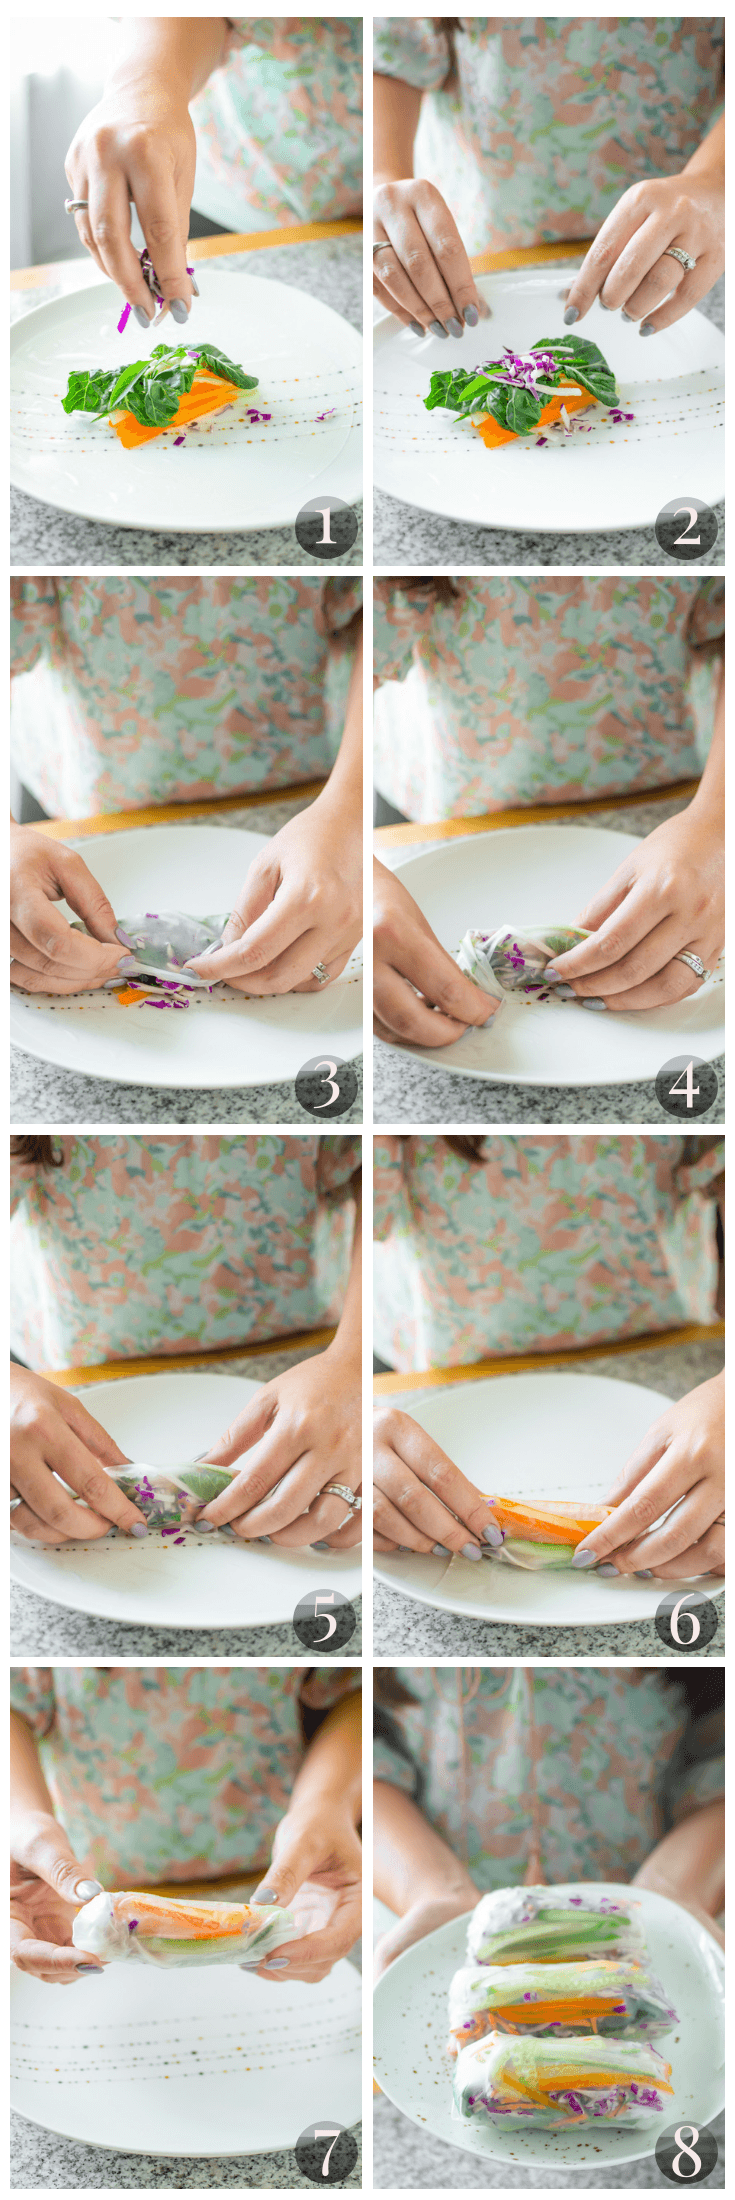 Step by Step Guide to Rolling Fresh Spring Rolls by Emily Kyle Nutrition Tutorial